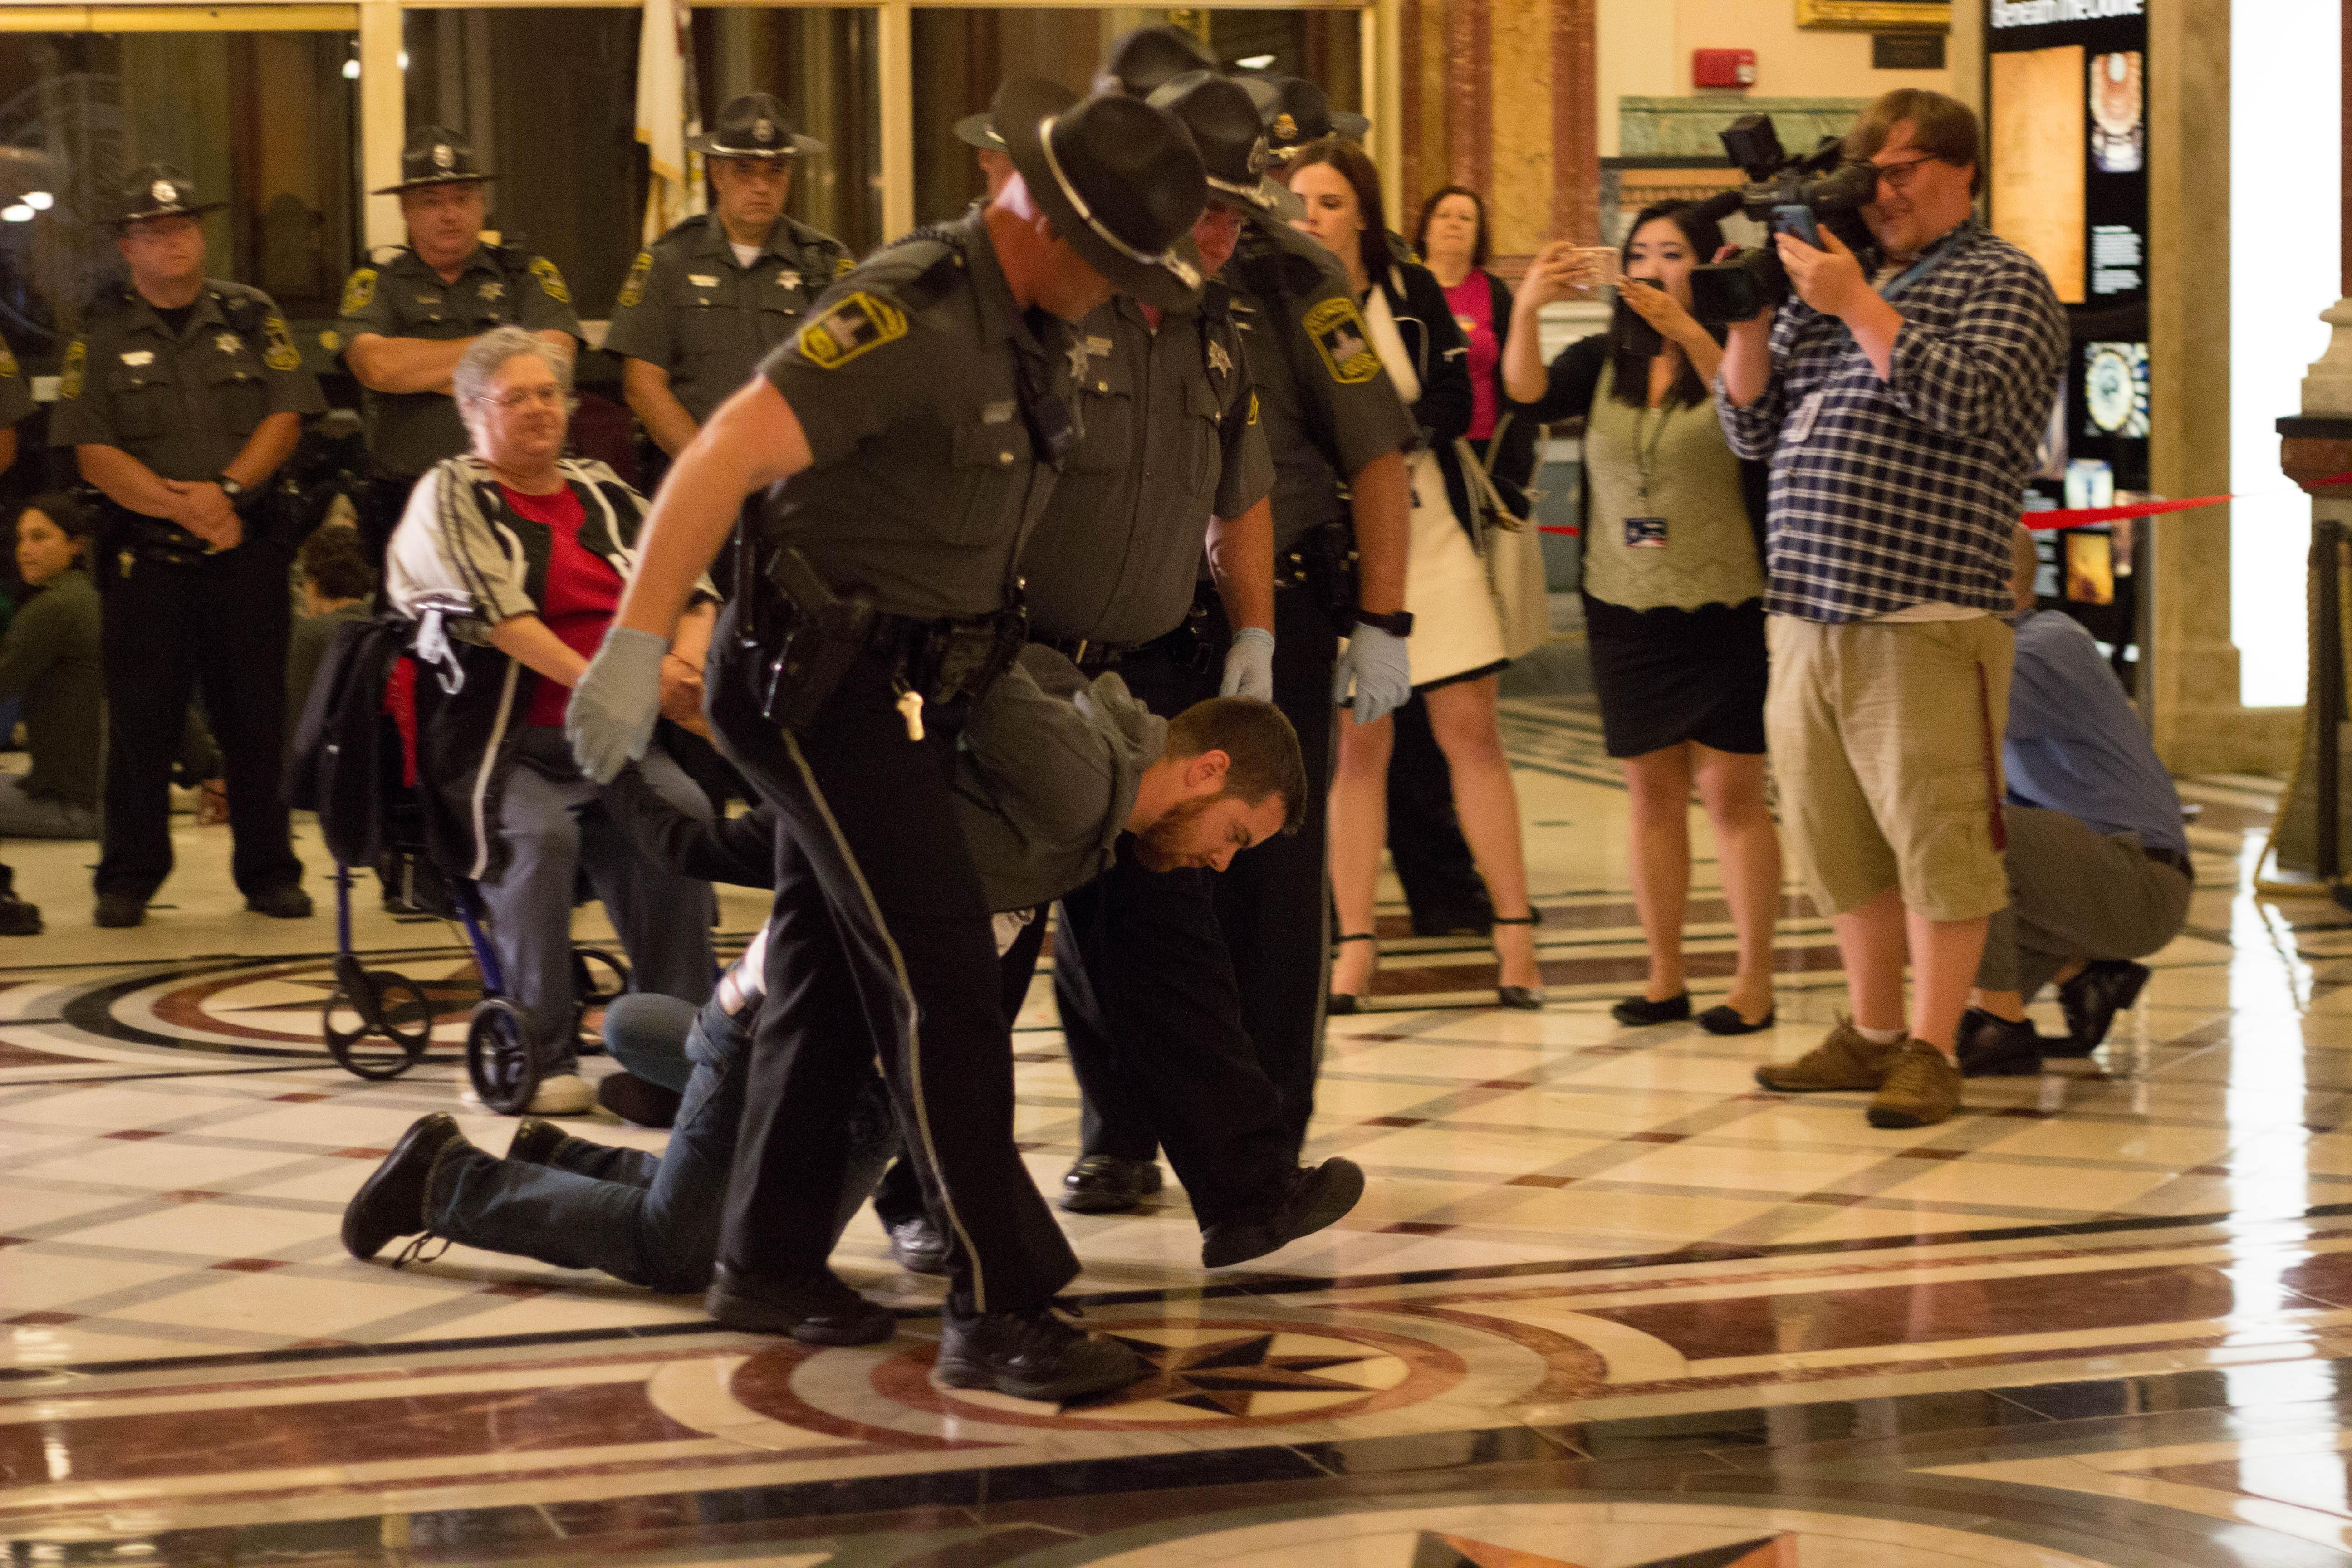 Nearly three-dozen activists were arrested during a sit-in Tuesday night at the Illinois State Capitol.